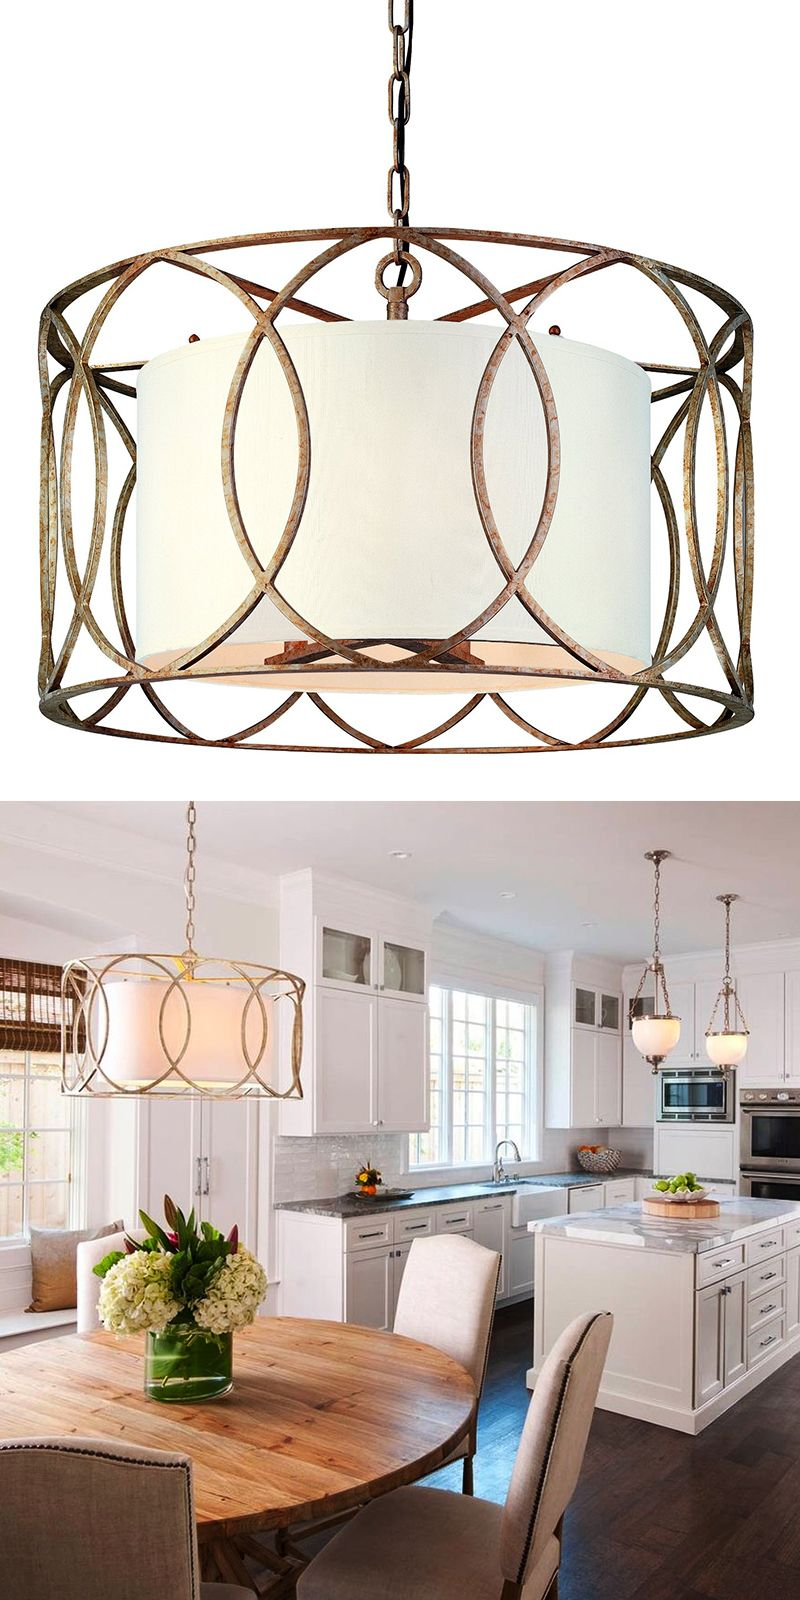 How To Make A Statement With A Modern Chandelier Drum Shade